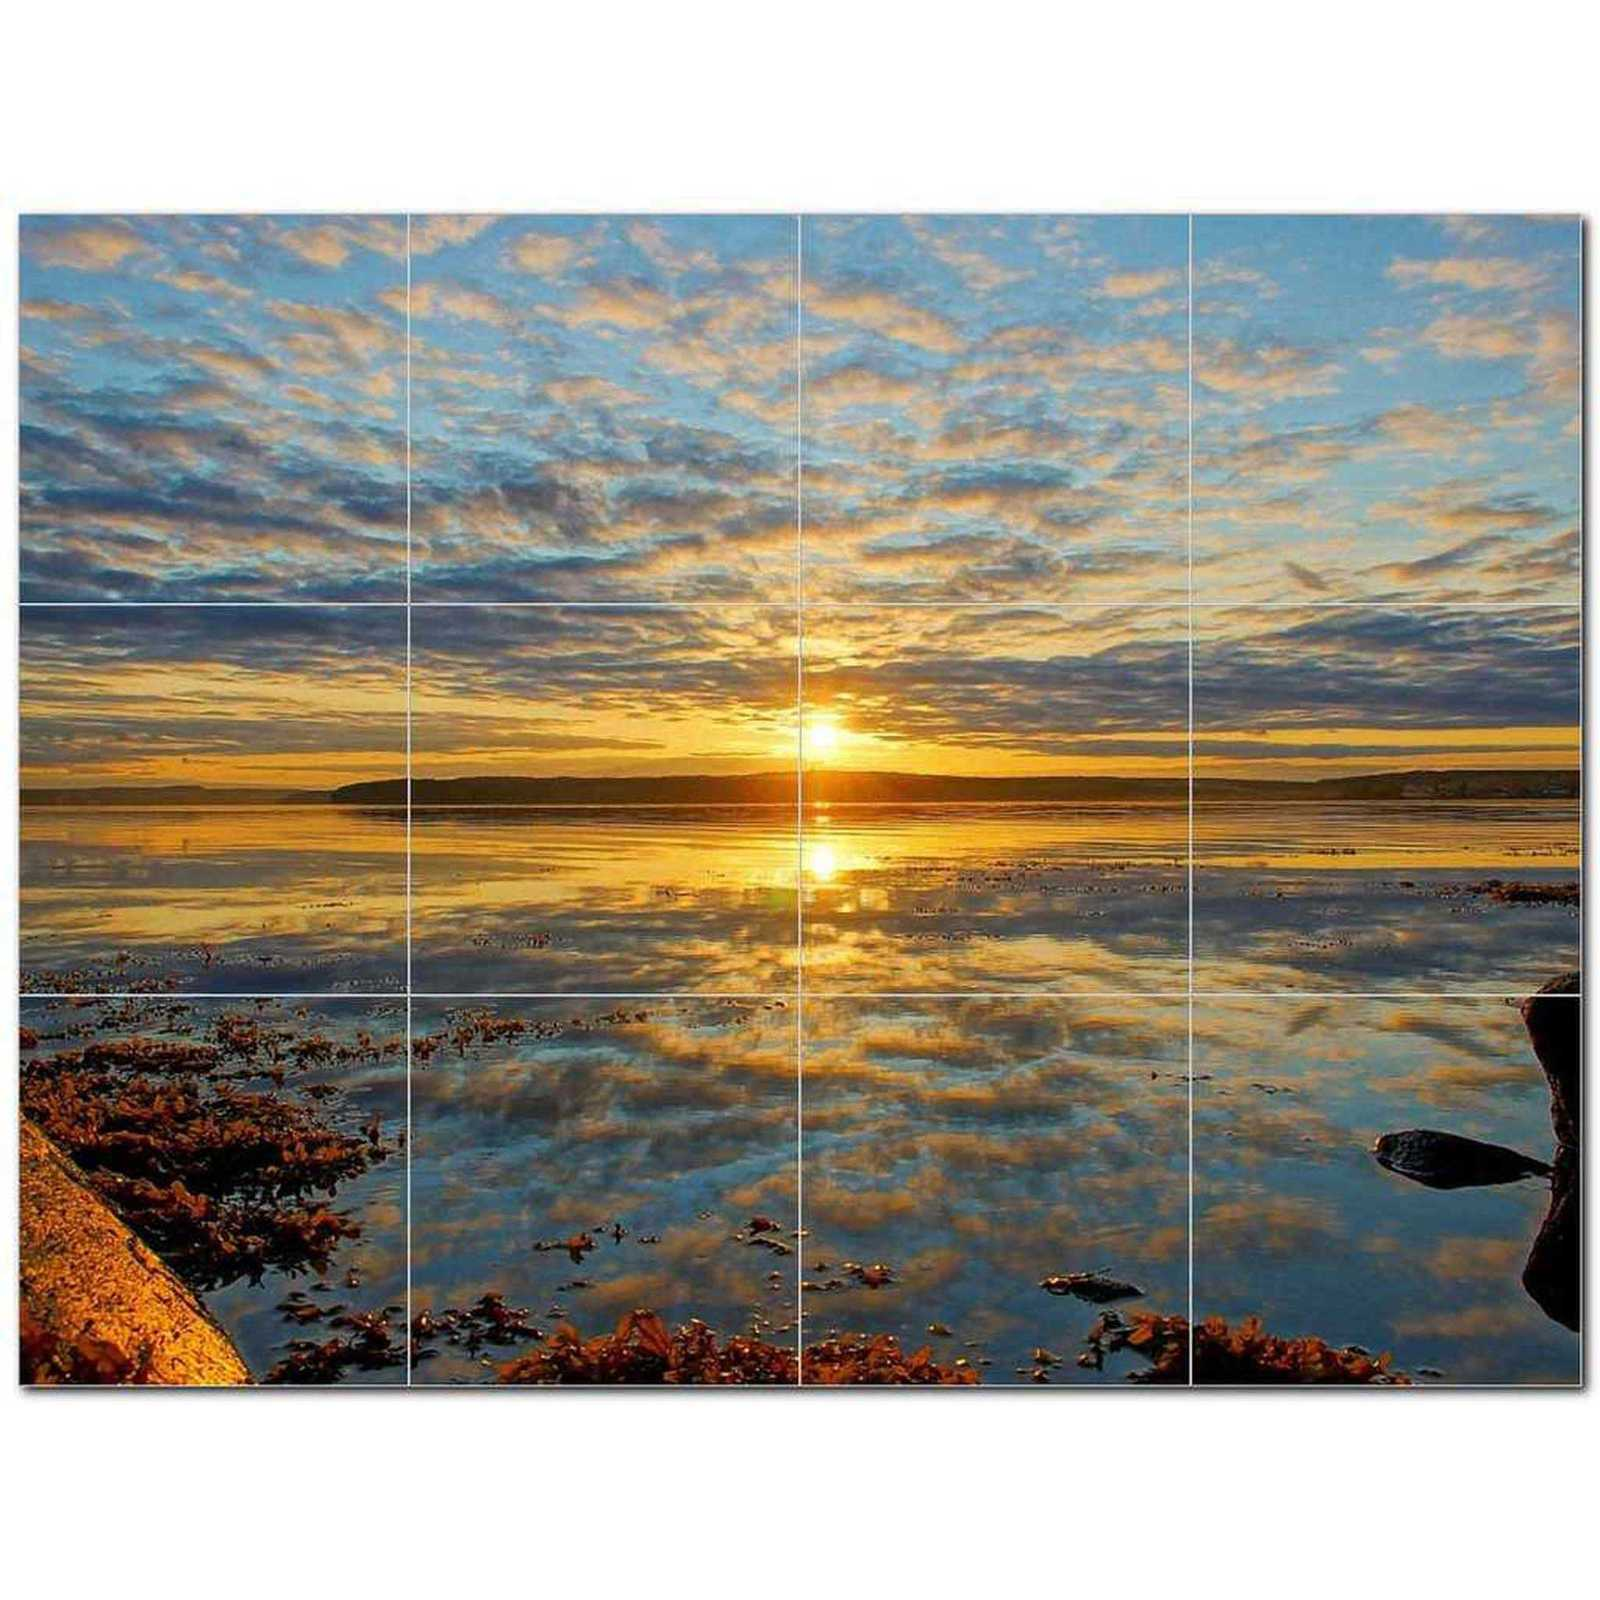 Primary image for Sunset Photo Ceramic Tile Mural Kitchen Backsplash Bathroom Shower BAZ405930